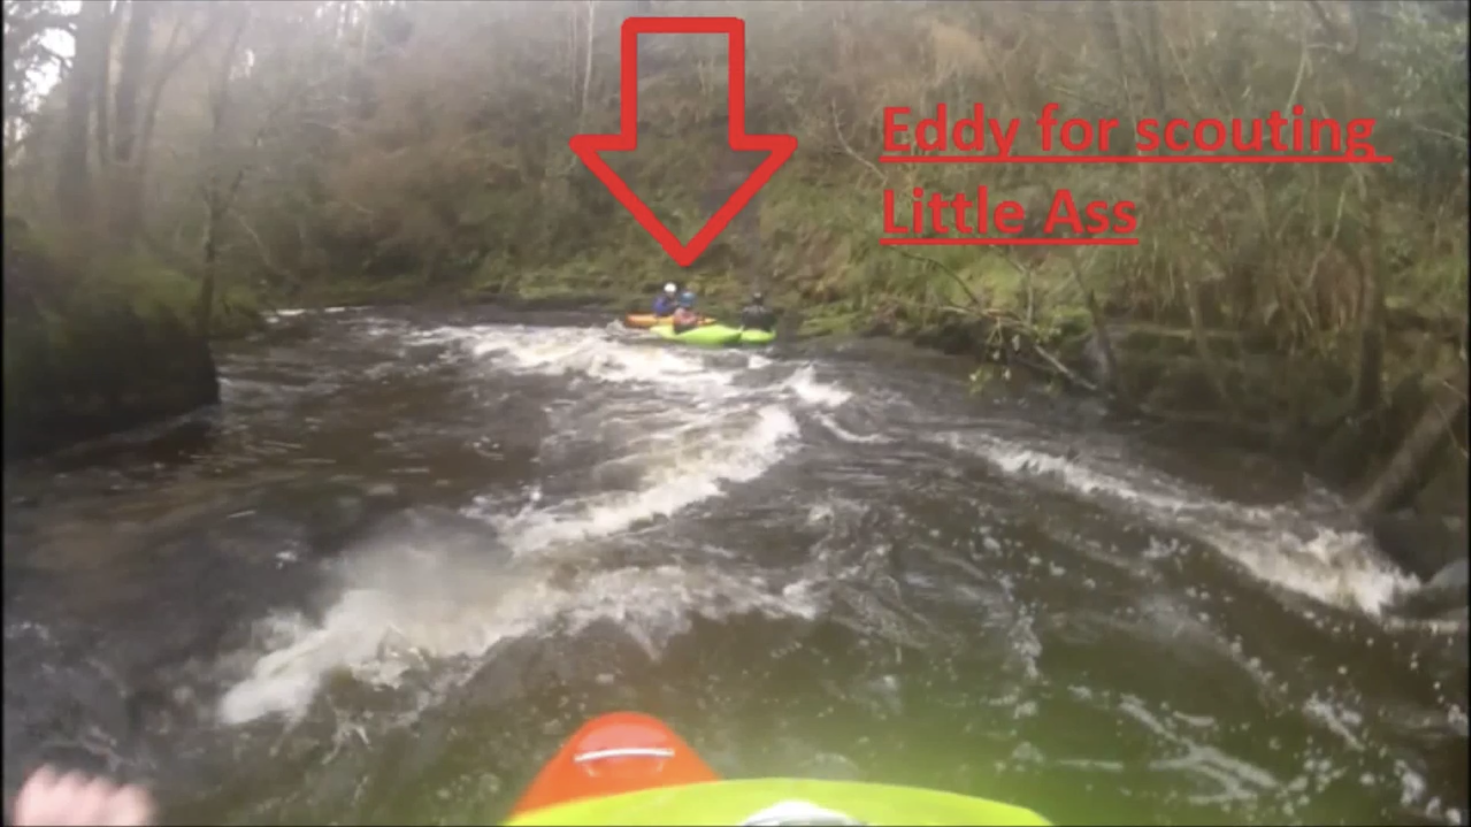 Clare Glens Double Drop / Little Ass River Guide showing lines to take. Created by University of Limerick Kayak Club.